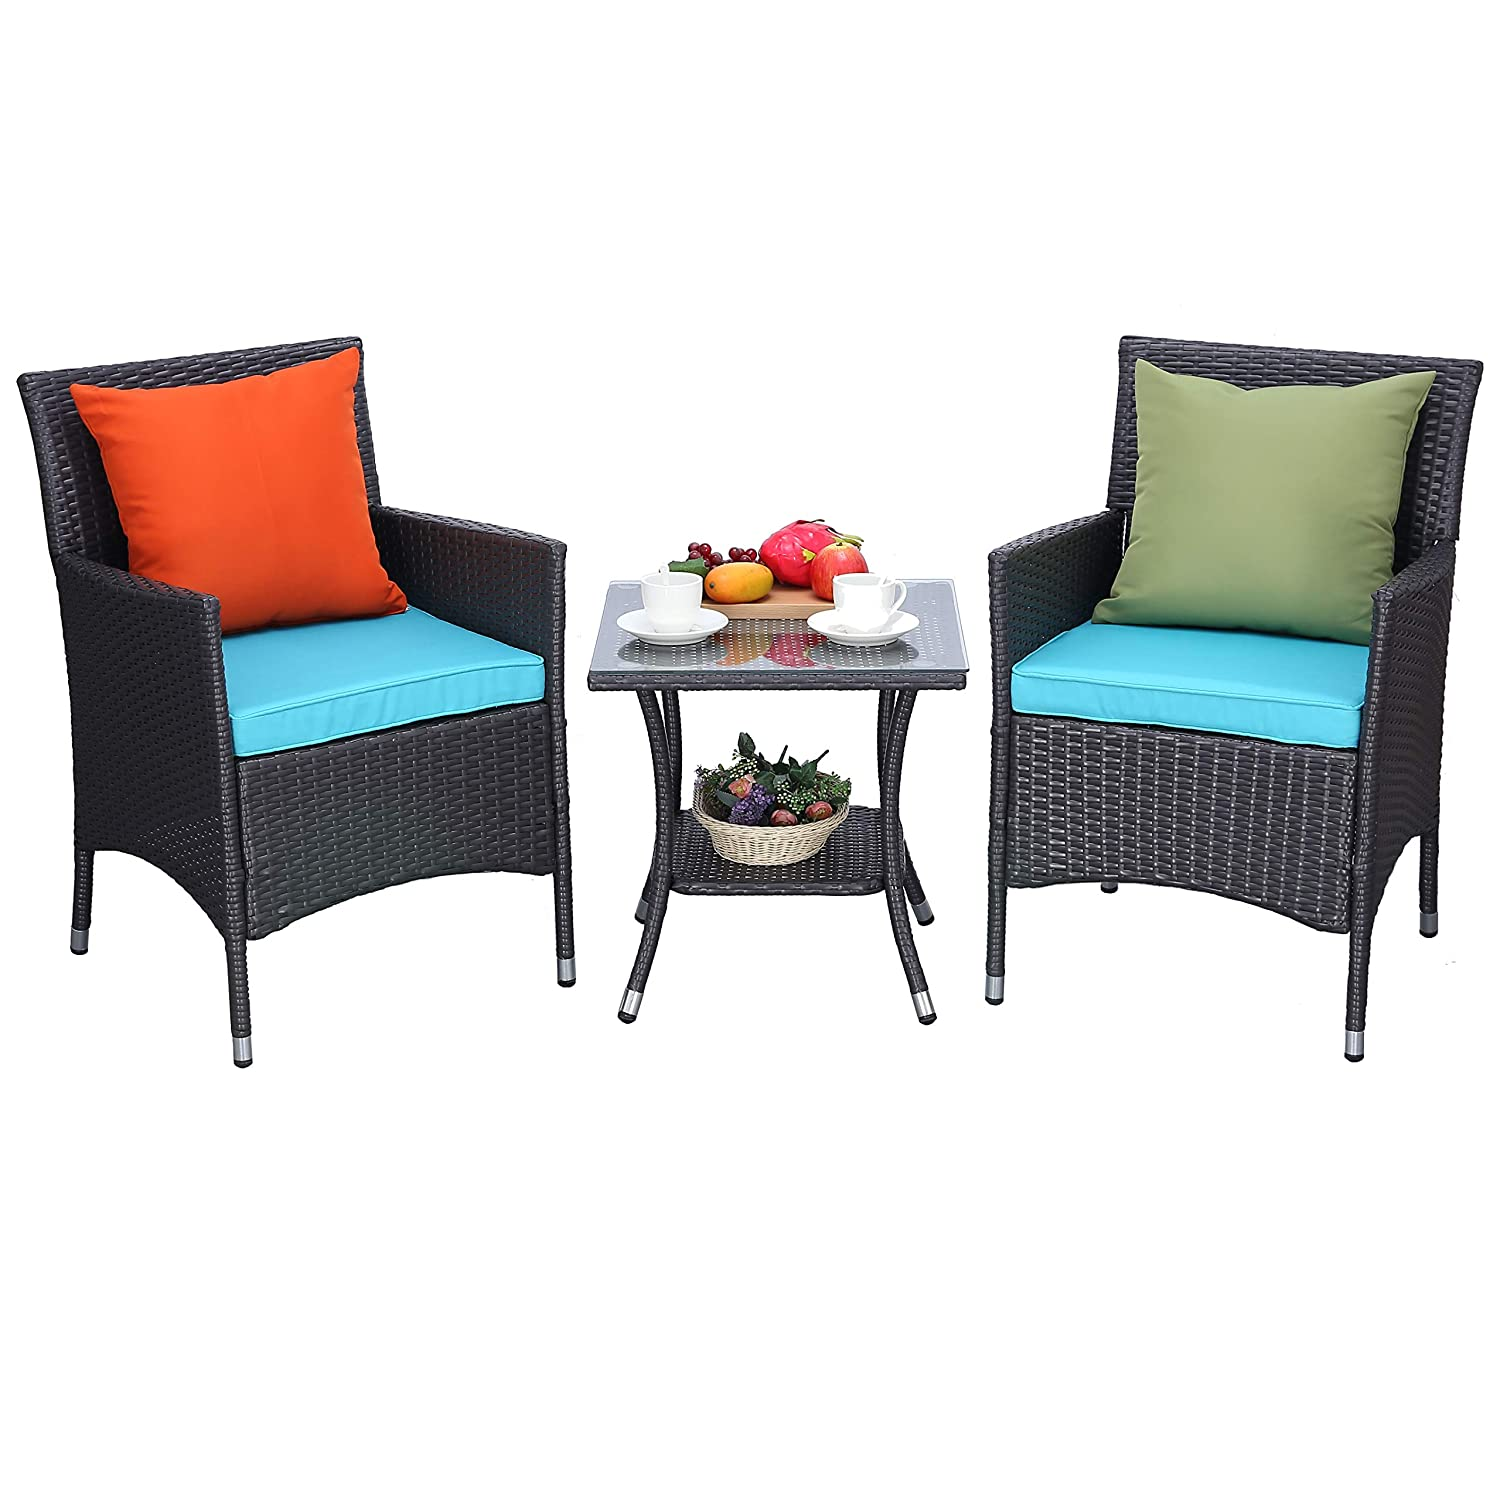 Do4u 3 pieces outdoor patio furniture set outdoor wicker conversation set cushioned pe wicker bistro set rattan chairs with coffee table porch backyard